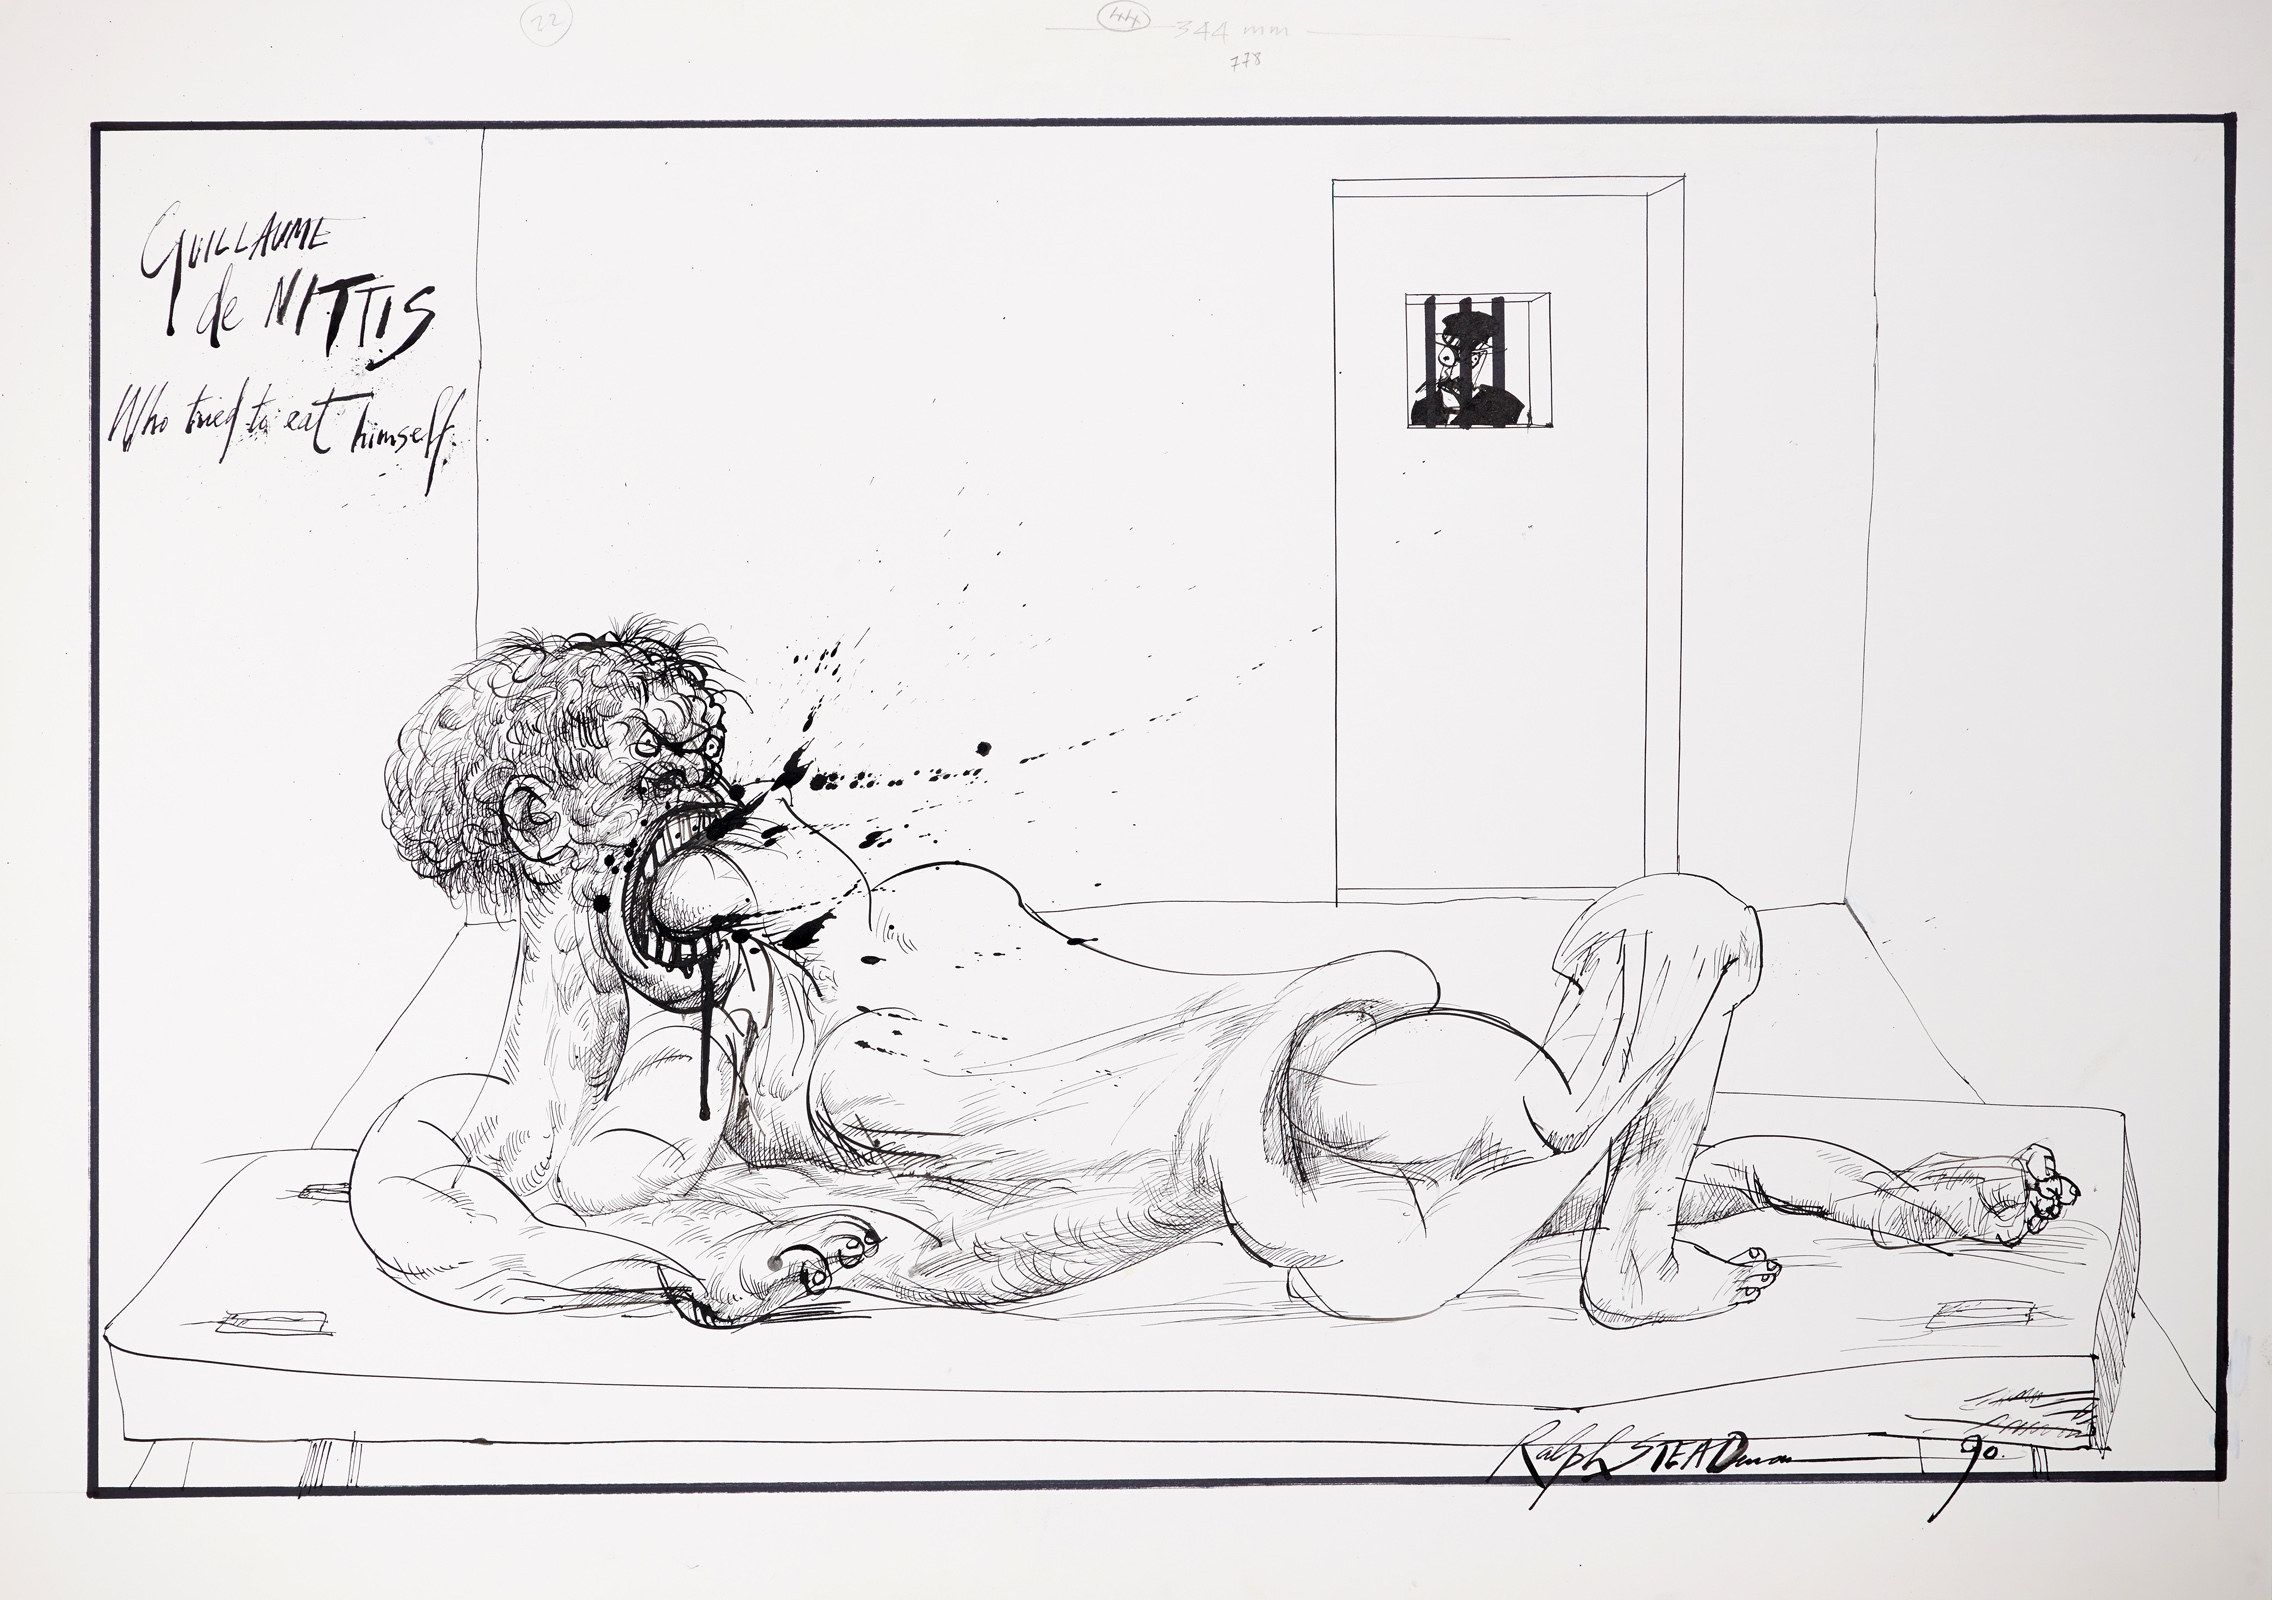 Ralph Steadman's collaboration with Will Self